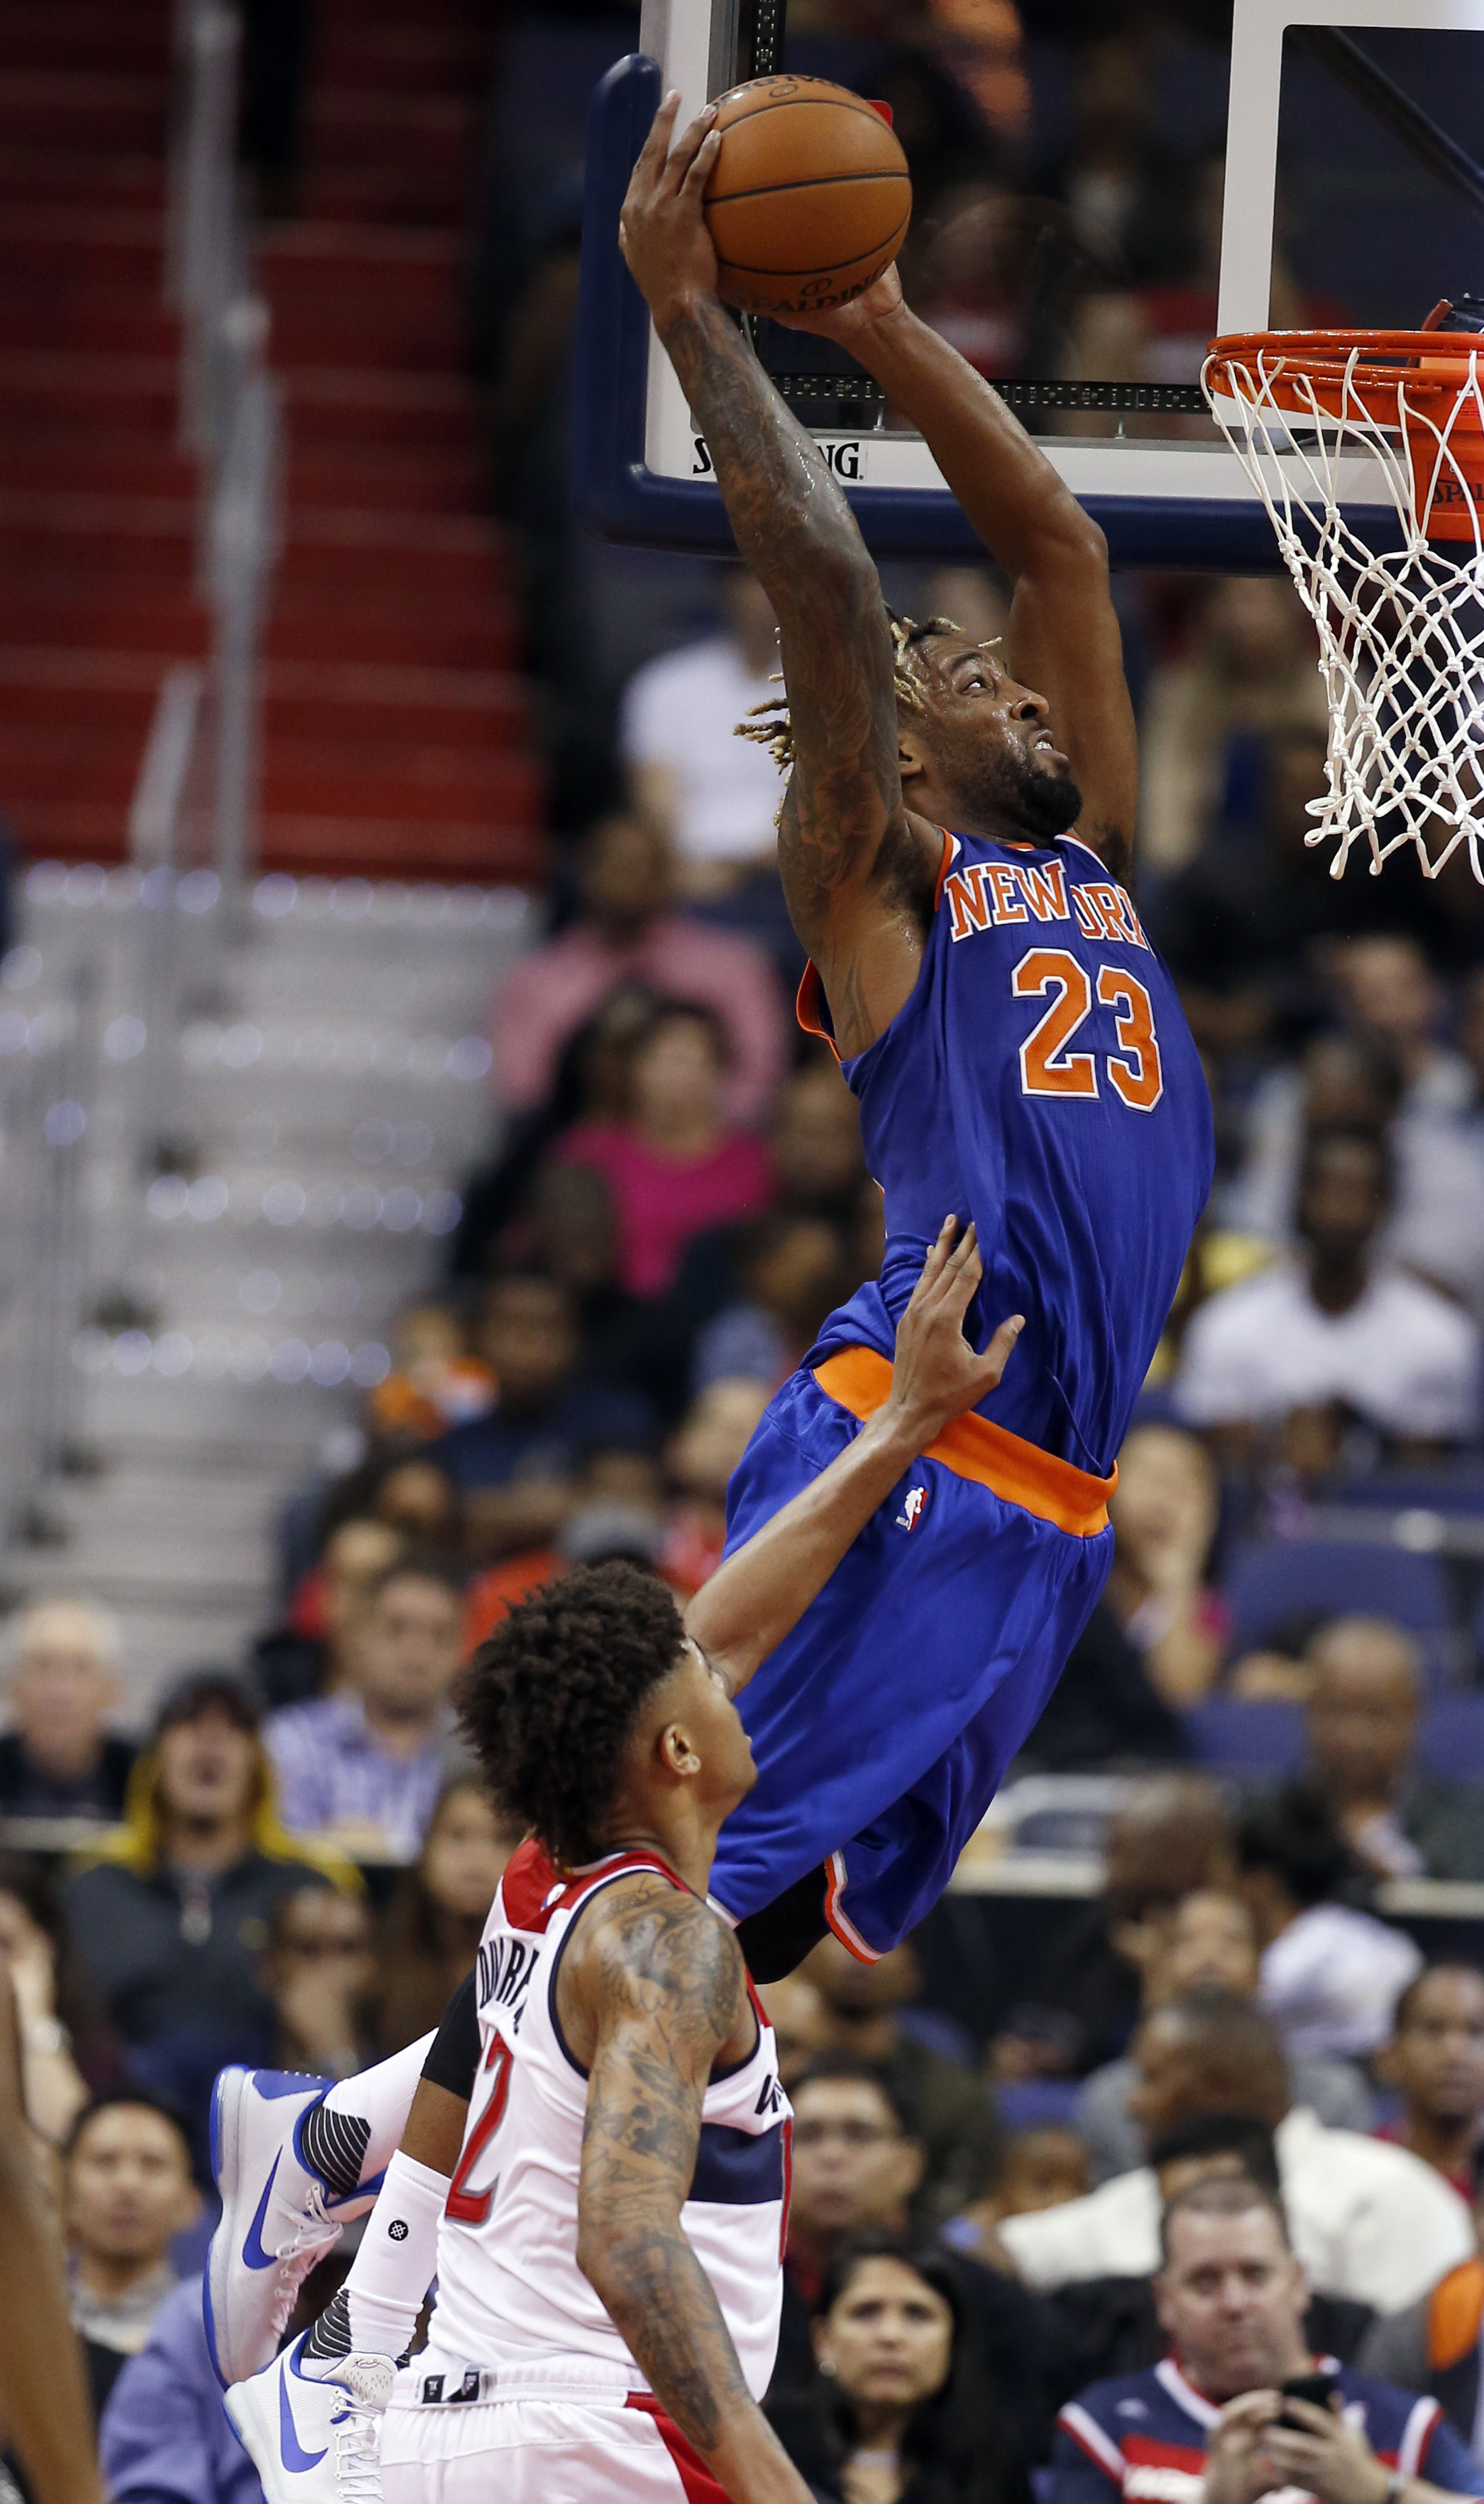 New York Knicks forward Derrick Williams (23) dunks over Washington Wizards forward Kelly Oubre Jr. (12) in the second half of an NBA preseason basketball game, Friday, Oct. 9, 2015, in Washington. The Knicks won 115-104. (AP Photo/Alex Brandon)